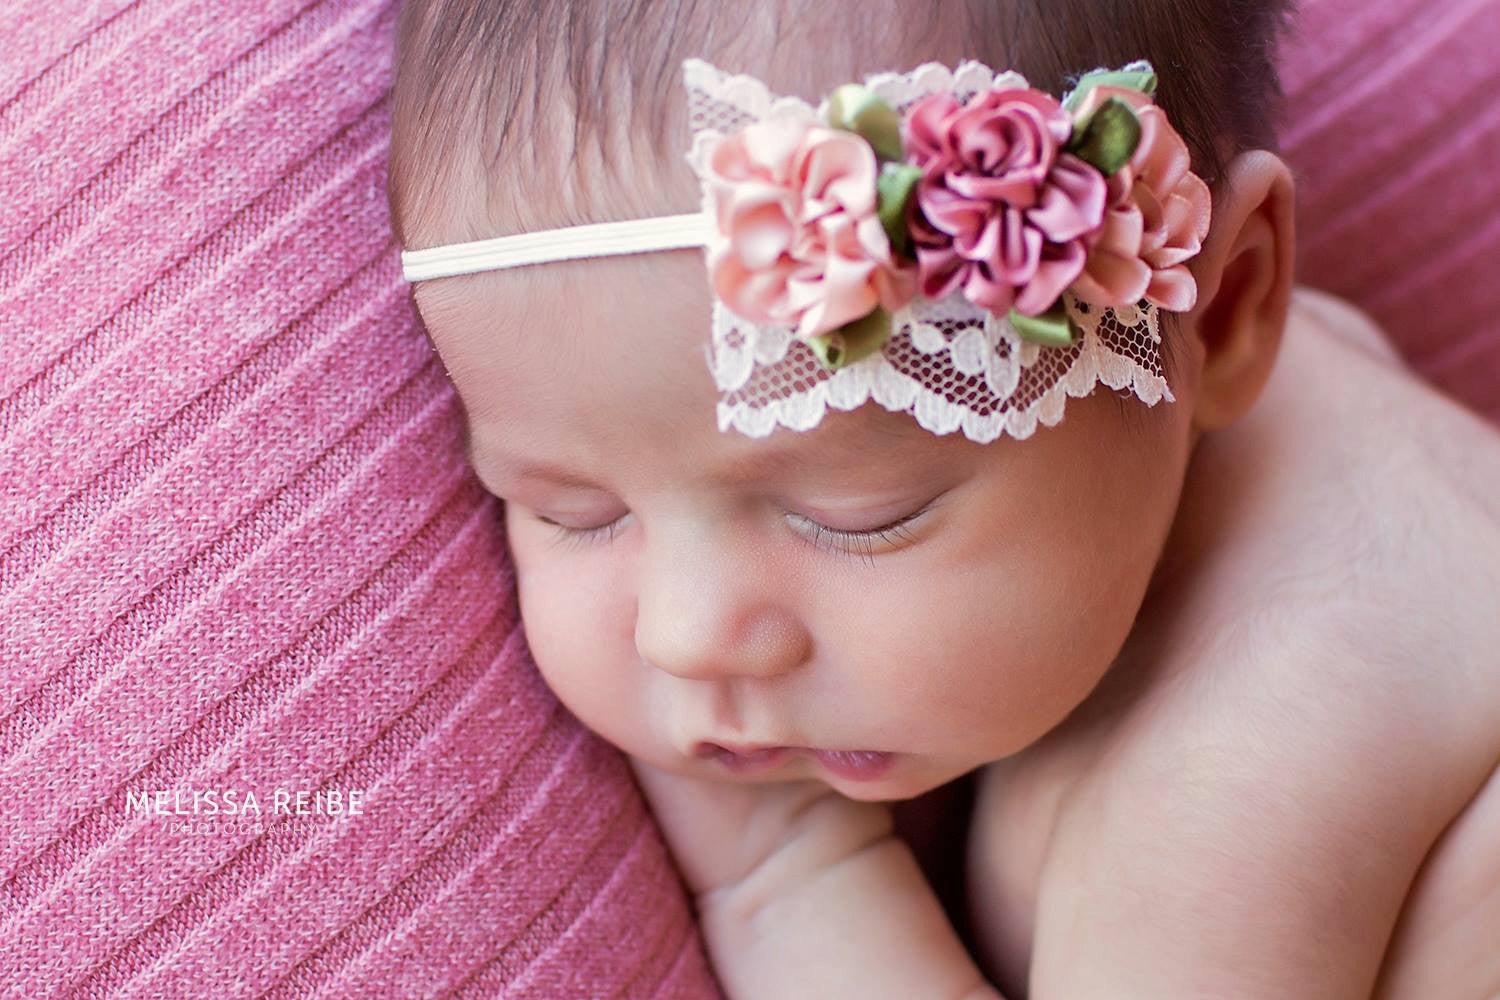 Dainty Baby Headband Vintage Inspired Baby Girl Headband Newborn Infant  Toddler Rose Lace Blush Headband Photo Prop (Vintage Blush Roses) 5839382d31f